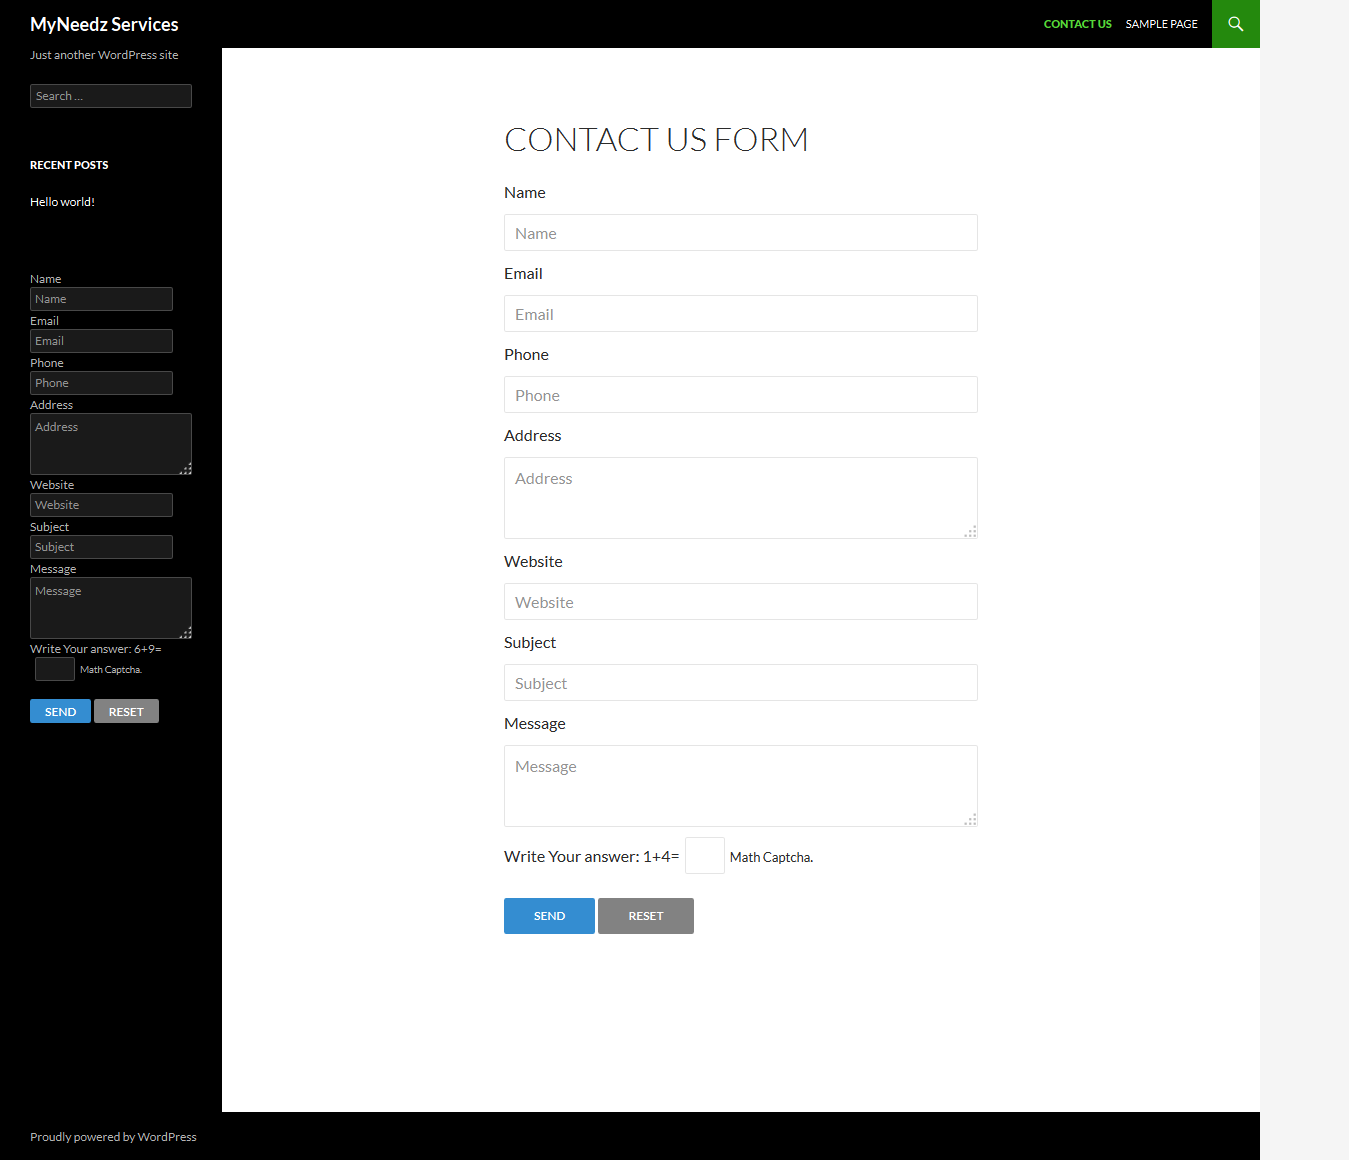 mn-contact-form screenshot 5